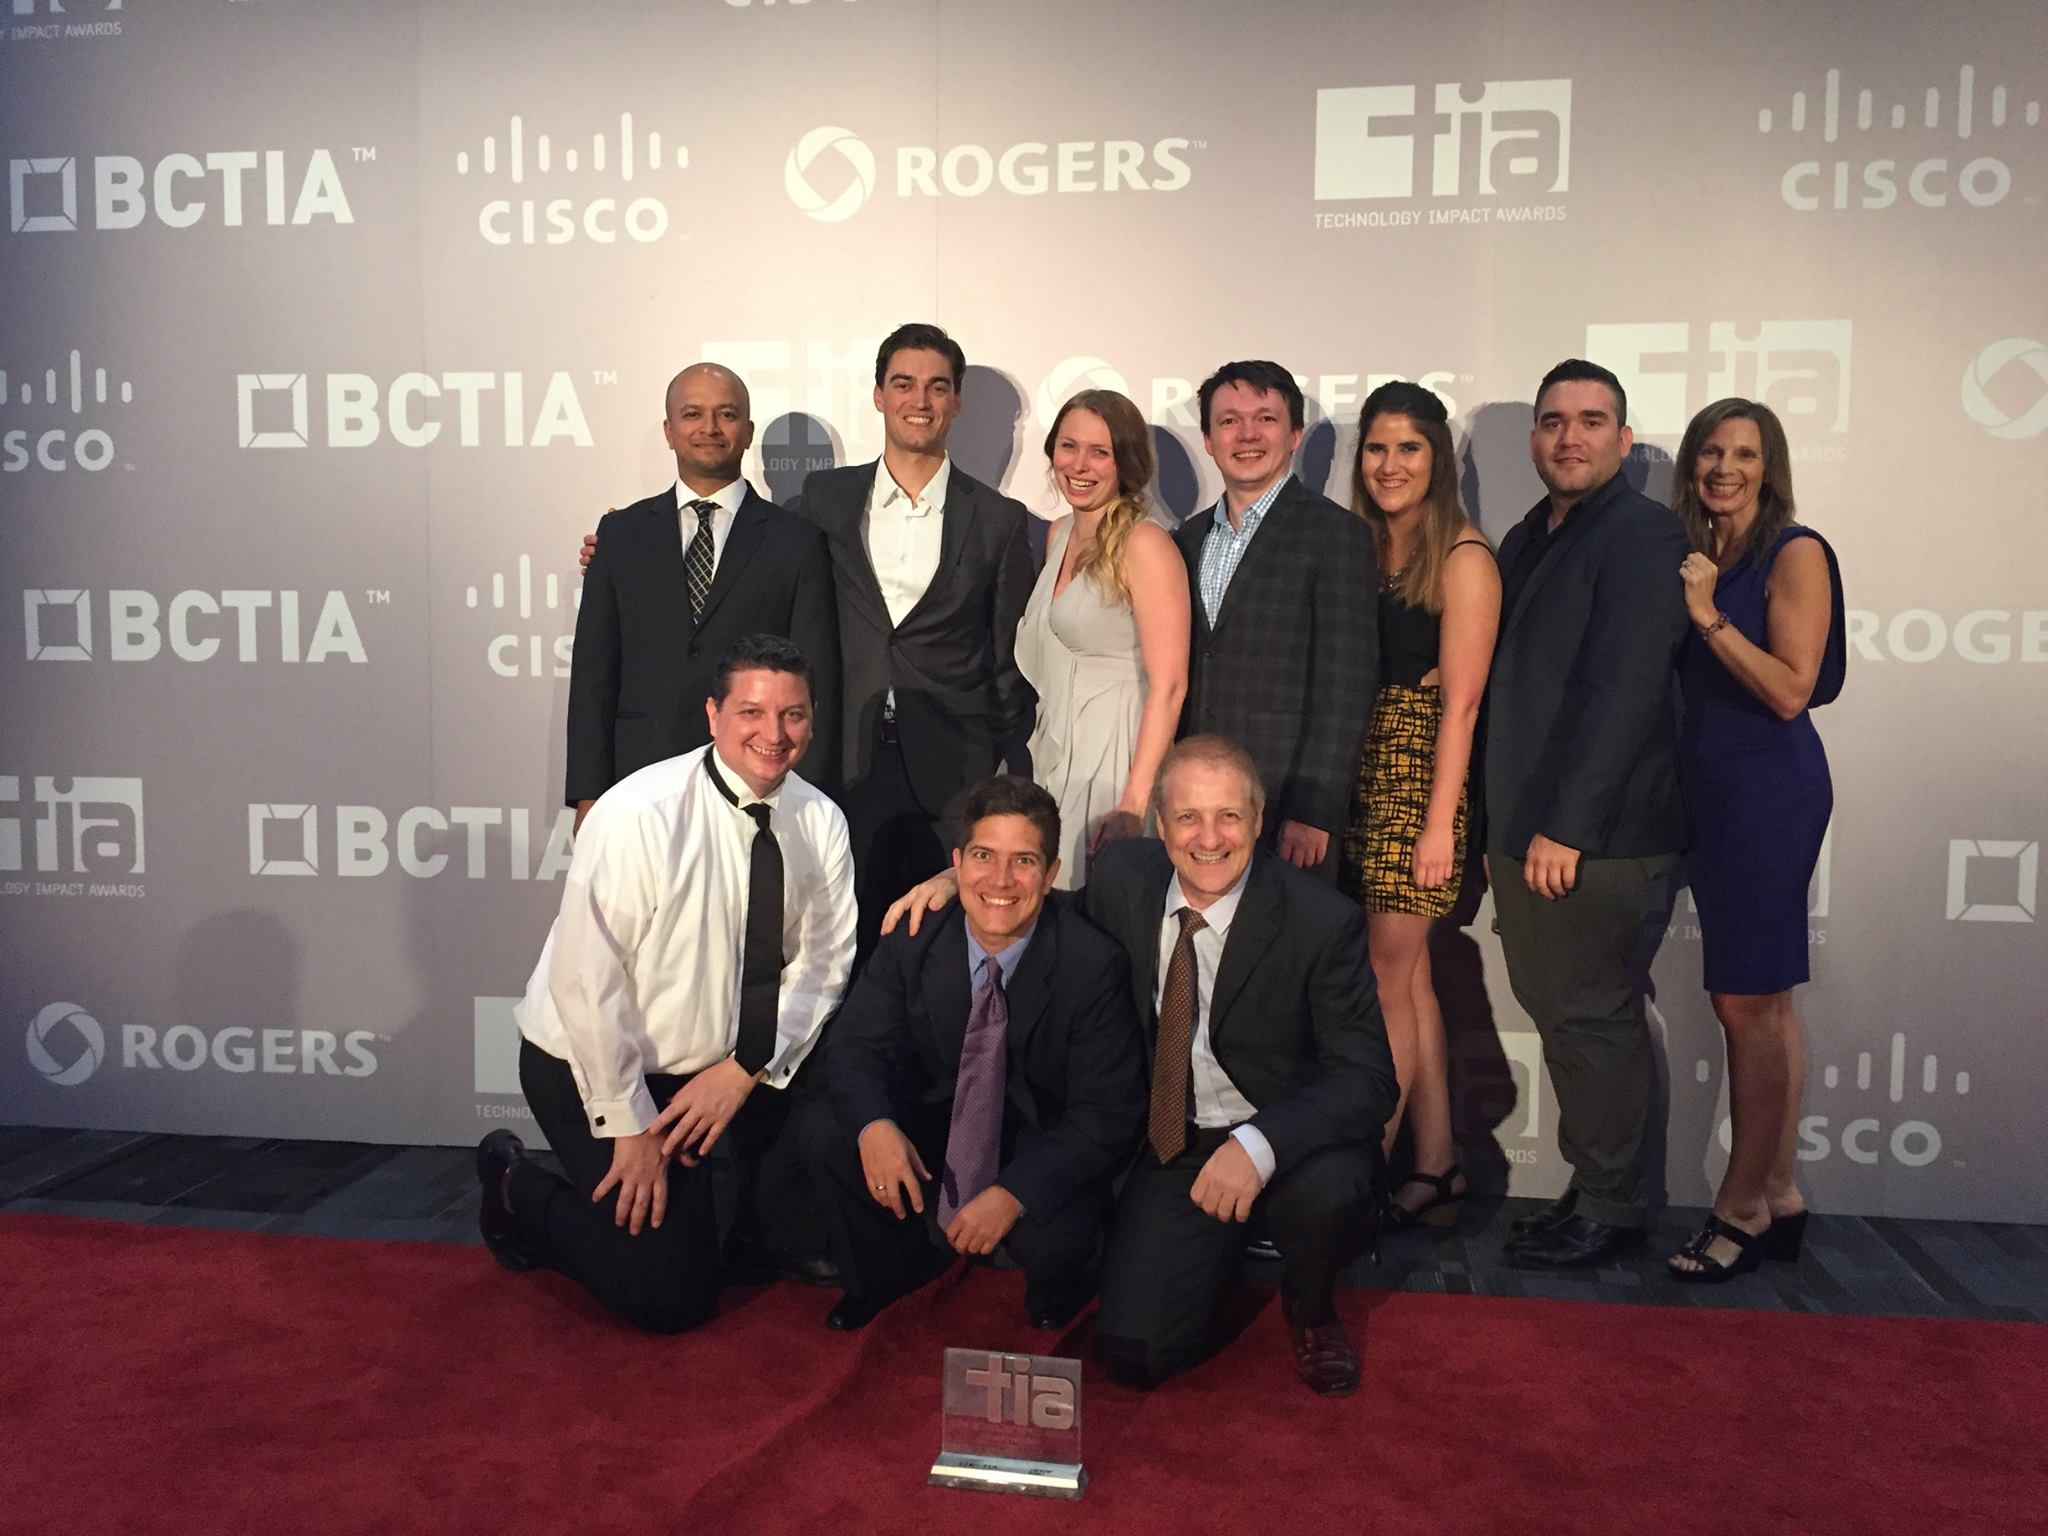 A few Lefties after winning the 2016 TIA for Community Engagement Award.